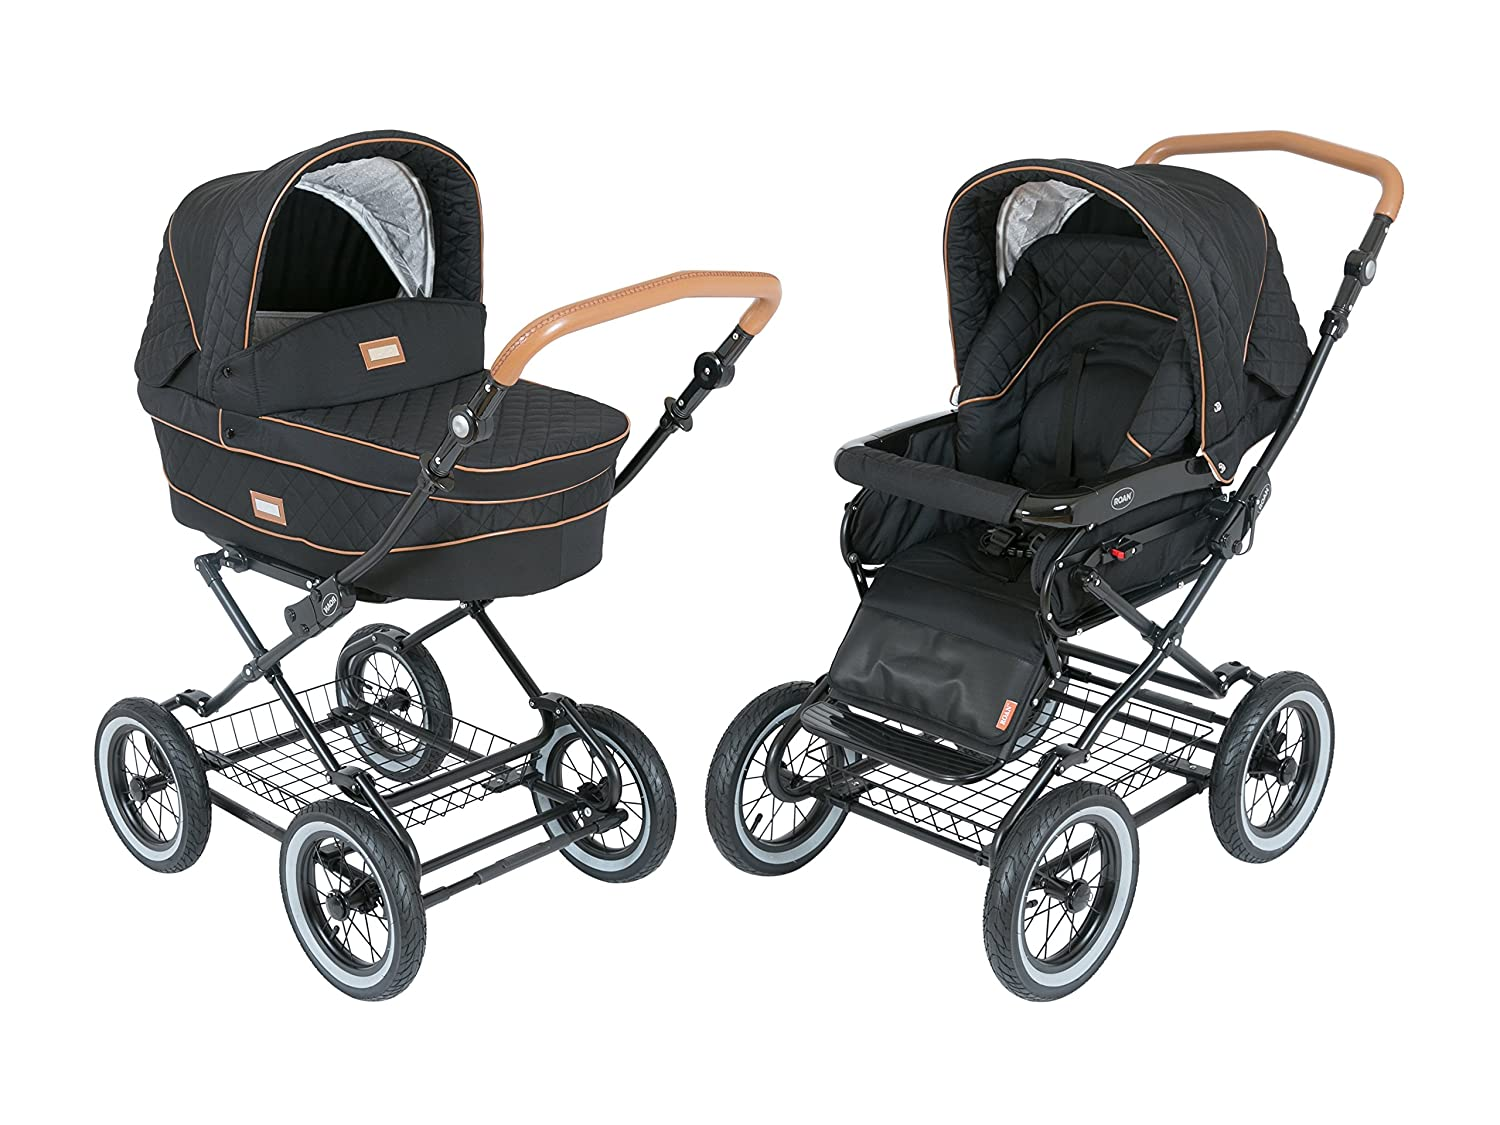 81HfG9hbJUL. SL1500 15 Best Umbrella Strollers for 2021 [Picked by Parents]